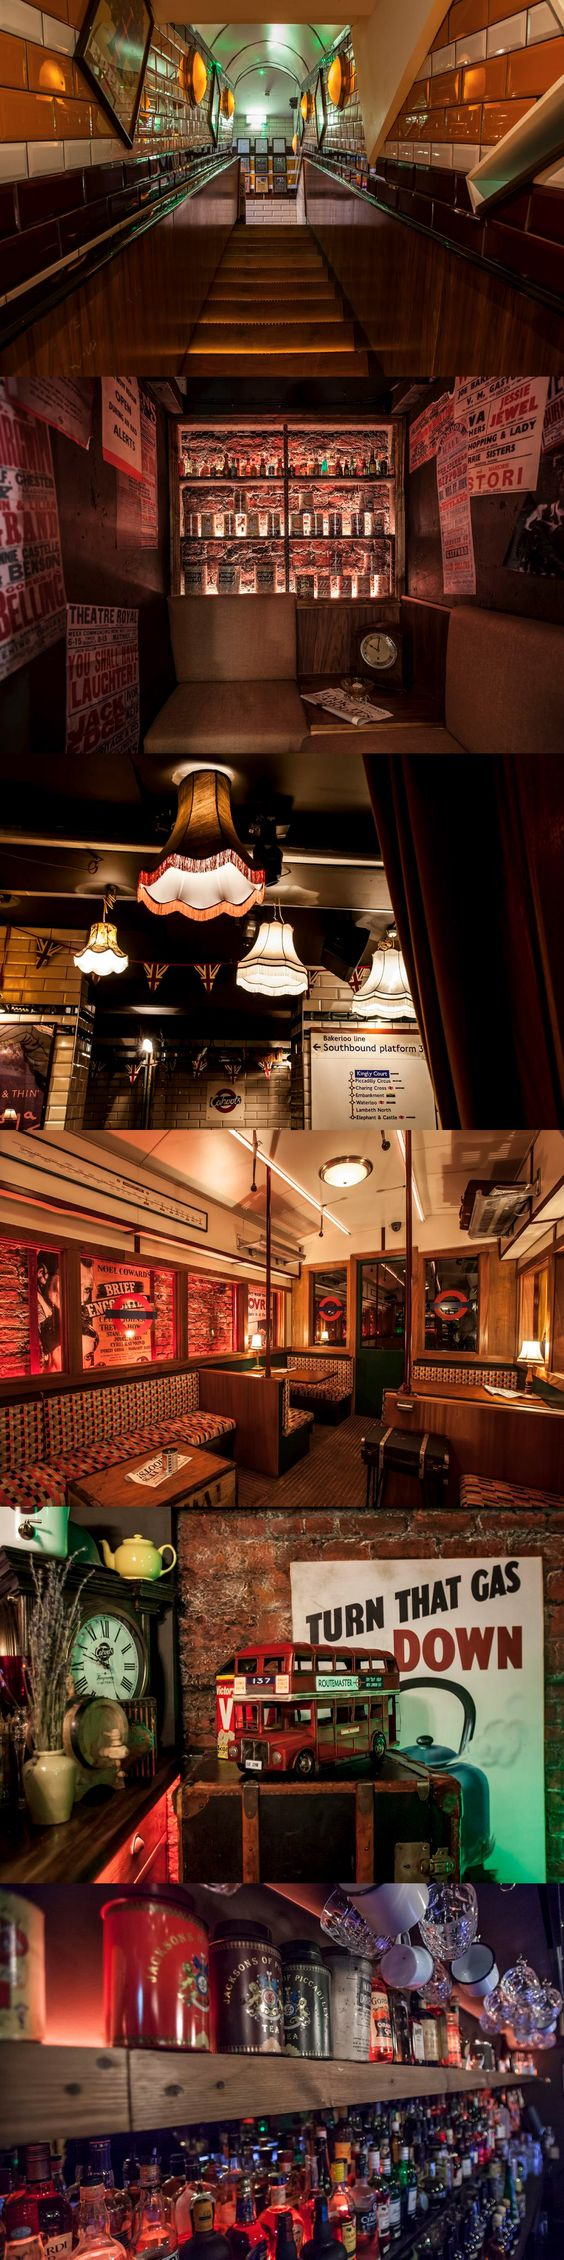 There's a new vintage tube-themed bar in Soho: http://now-here-this.timeout.com/2015/03/04/ten-reasons-to-visit-sohos-new-underground-bar-cahoots/